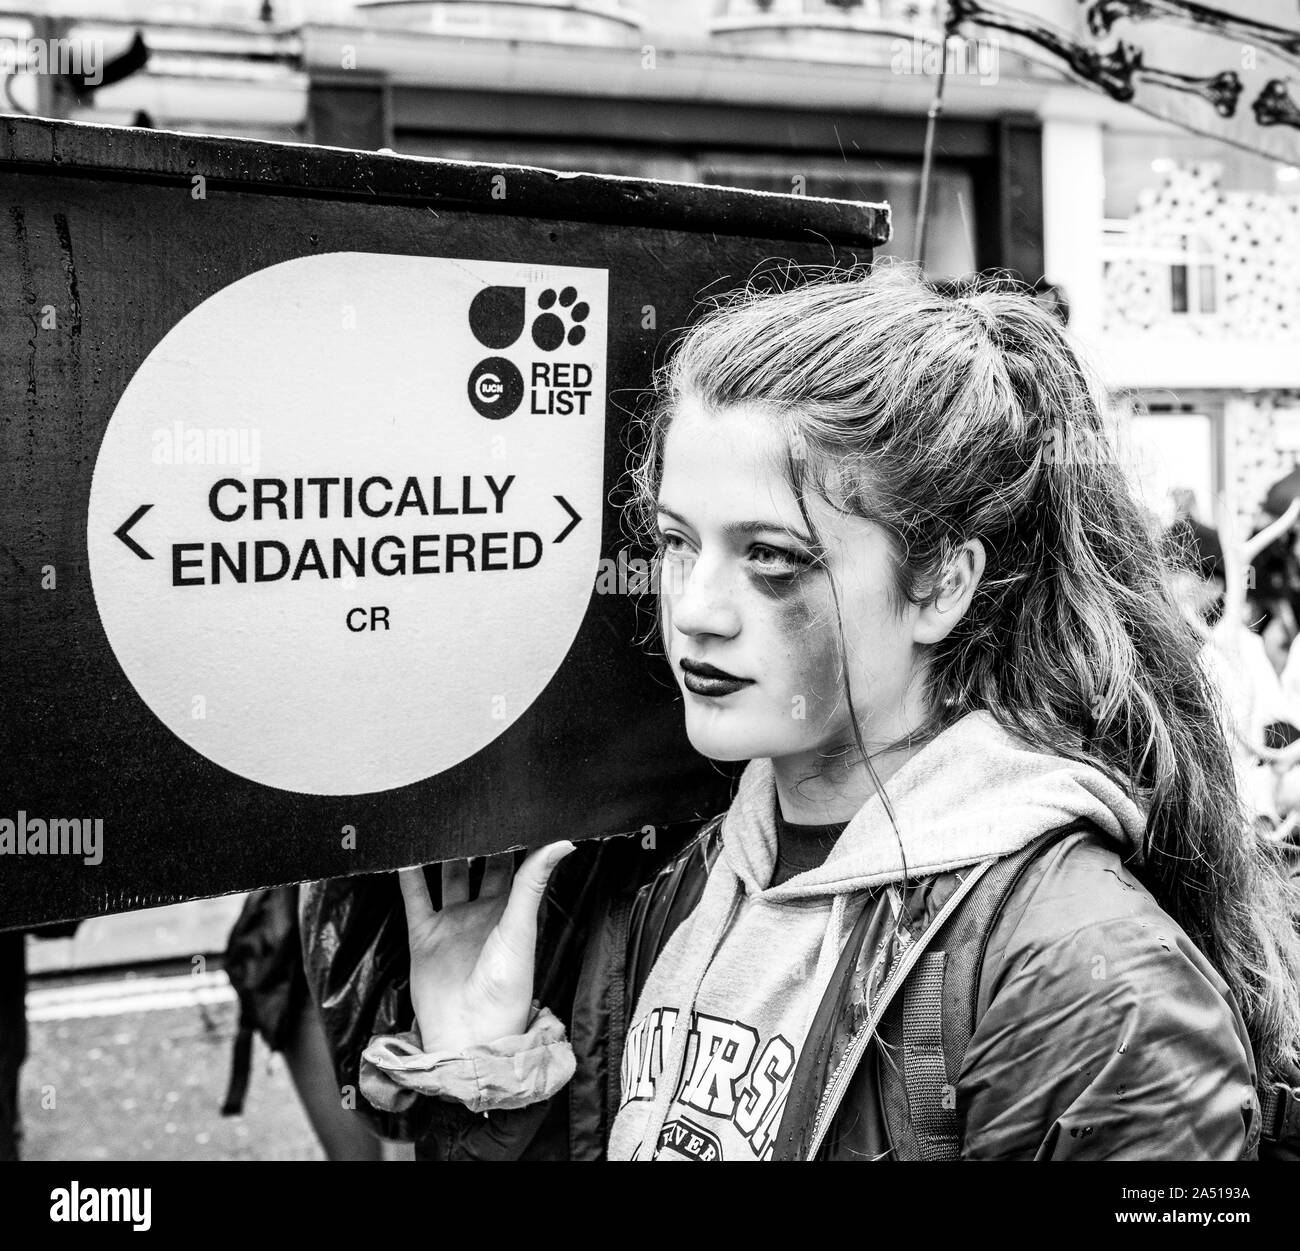 Extinction Rebellion youth Protester carries coffin for endangered species - London October 2019 Stock Photo